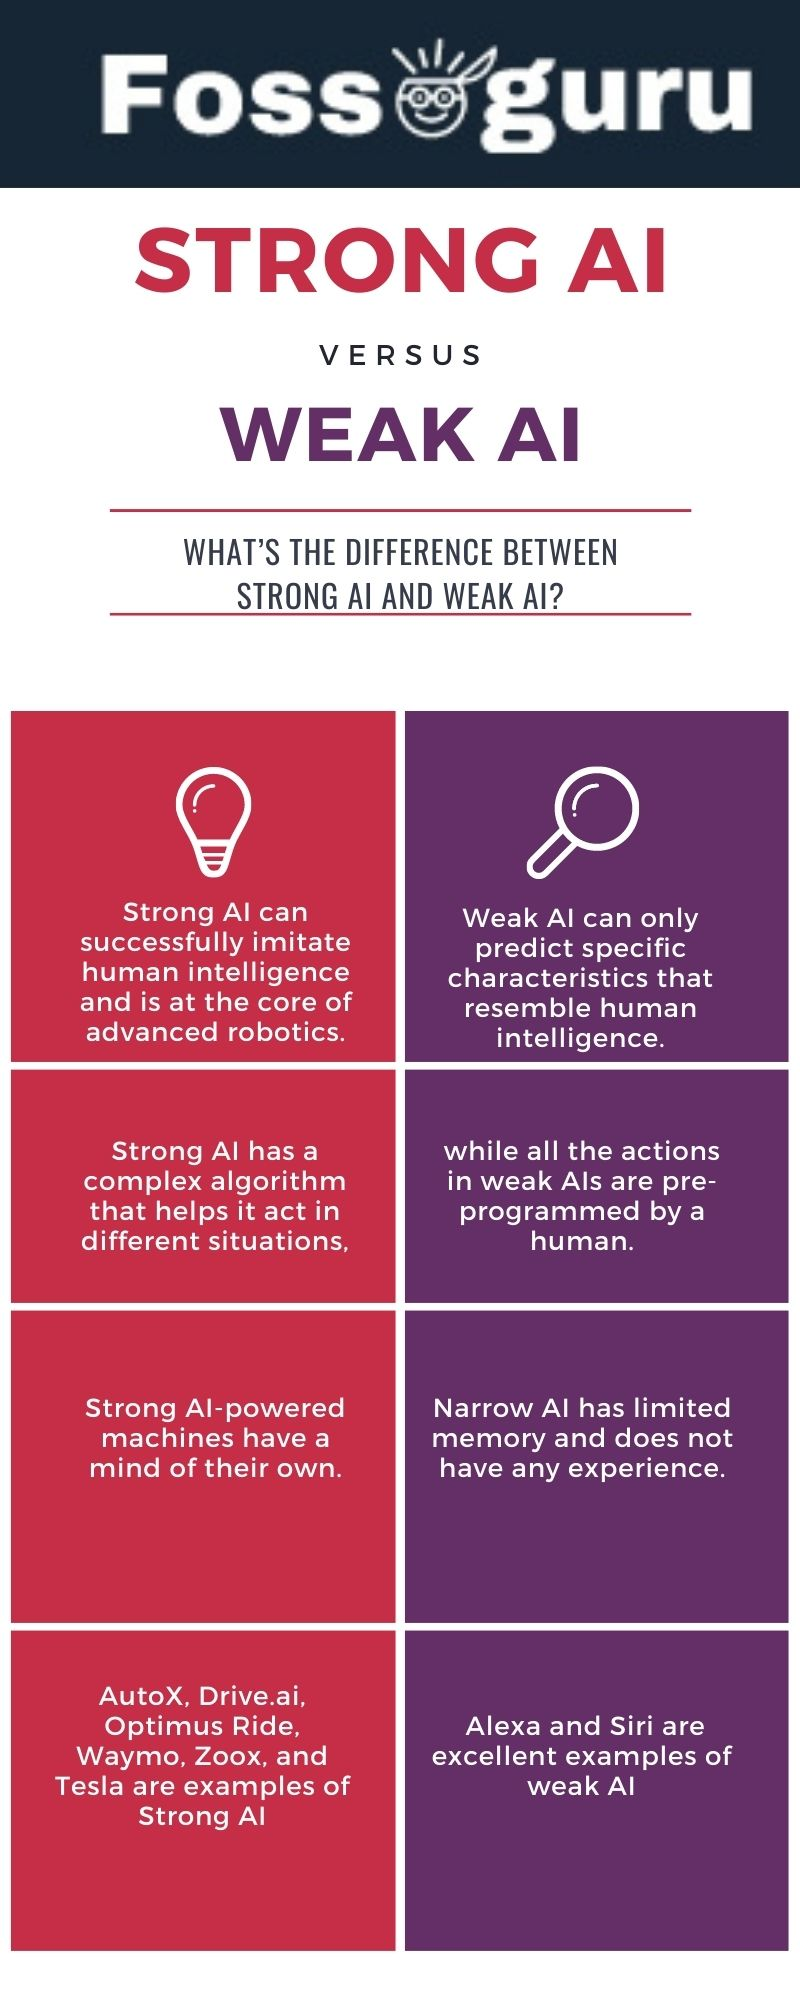 What's the difference between strong AI and weak AI